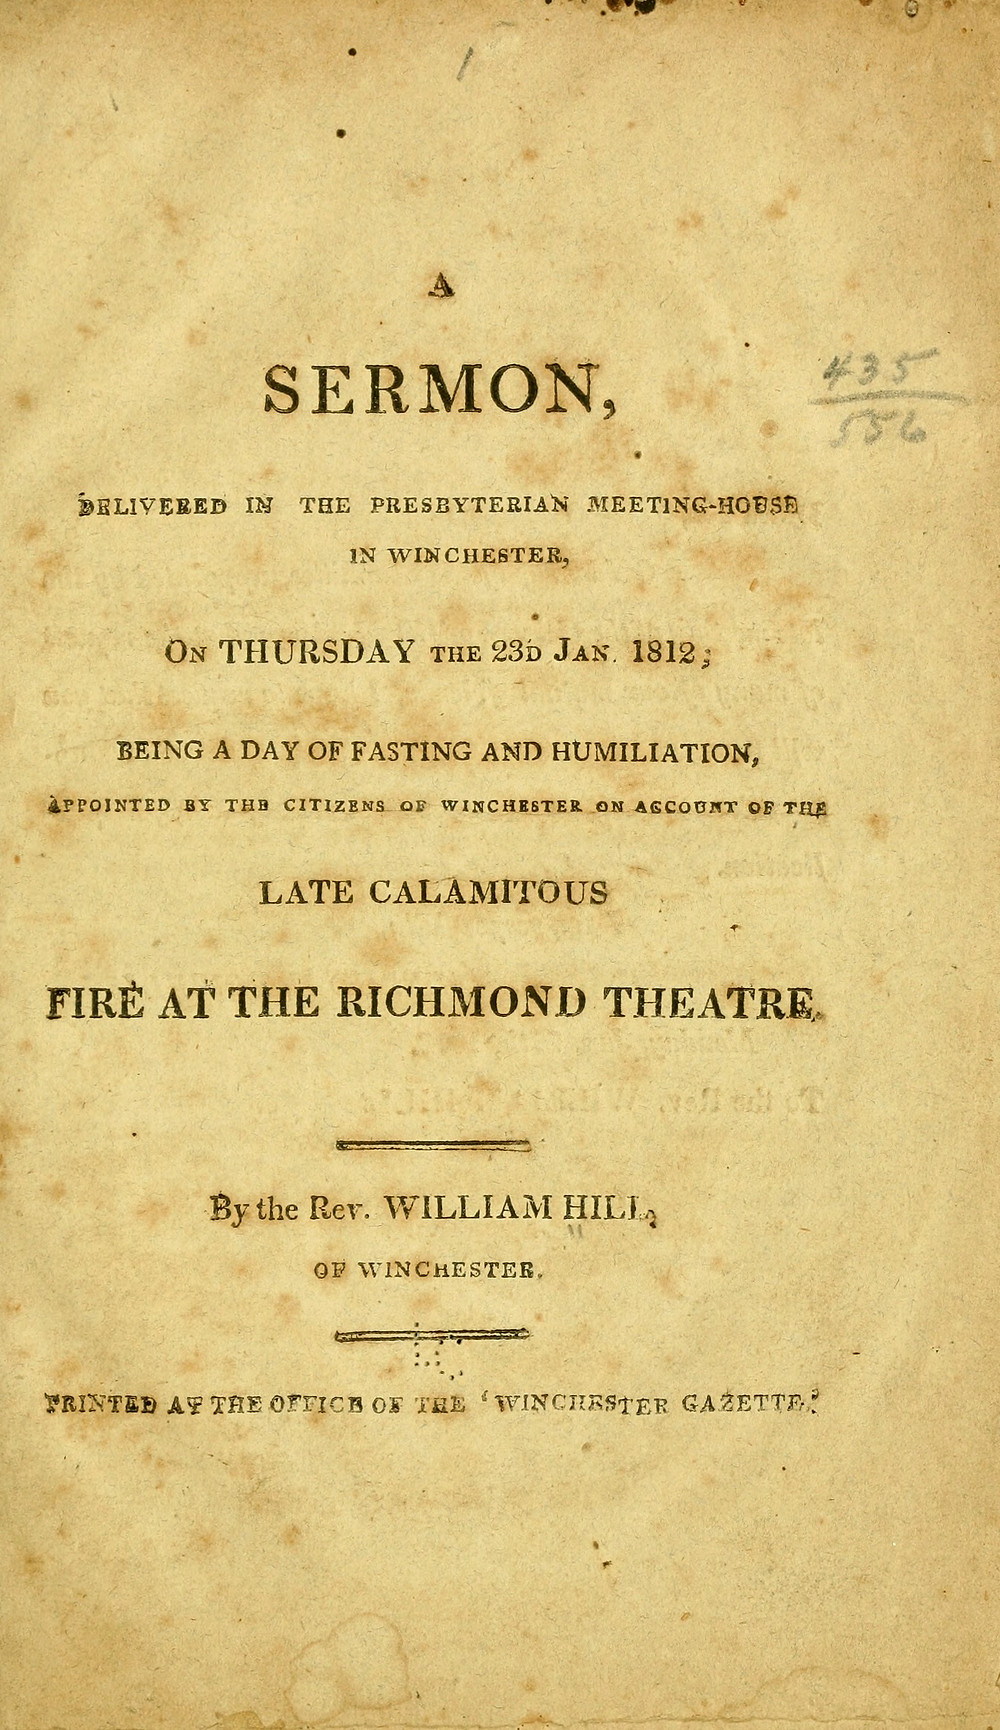 Copy of Rev. Hill's Sermon